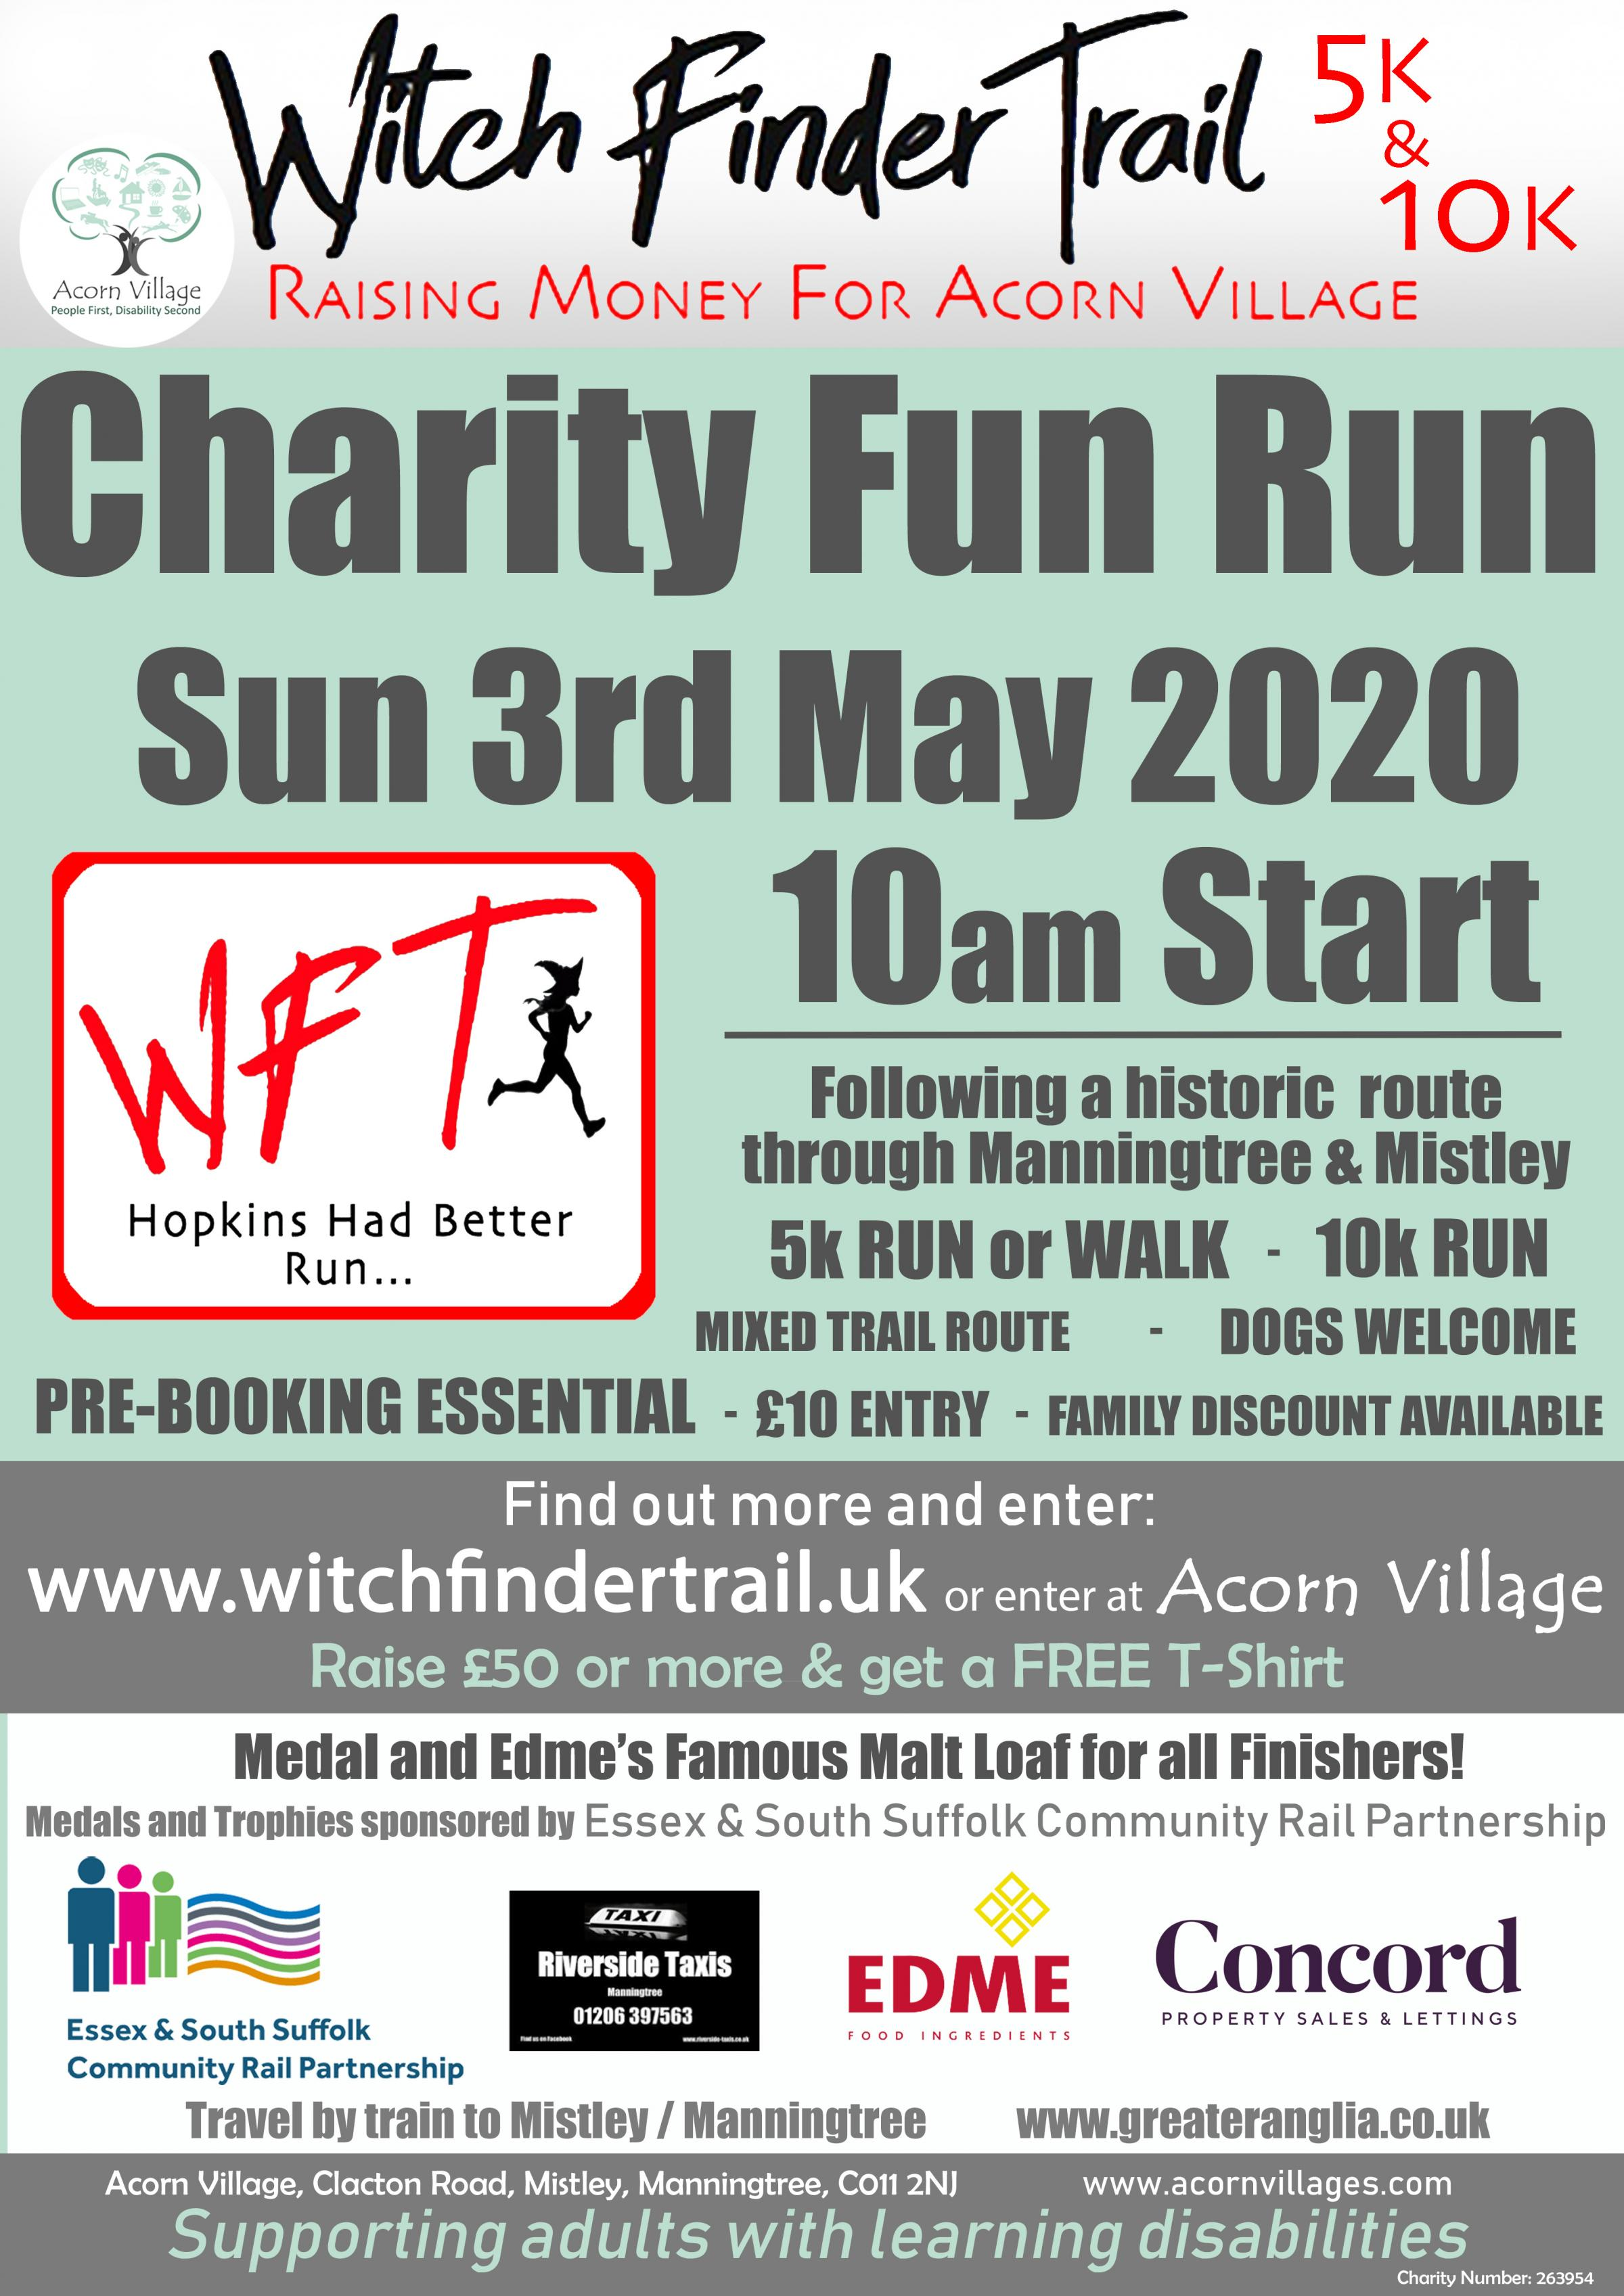 WitchFinder Trail 5k/10k Charity Run/ Walk